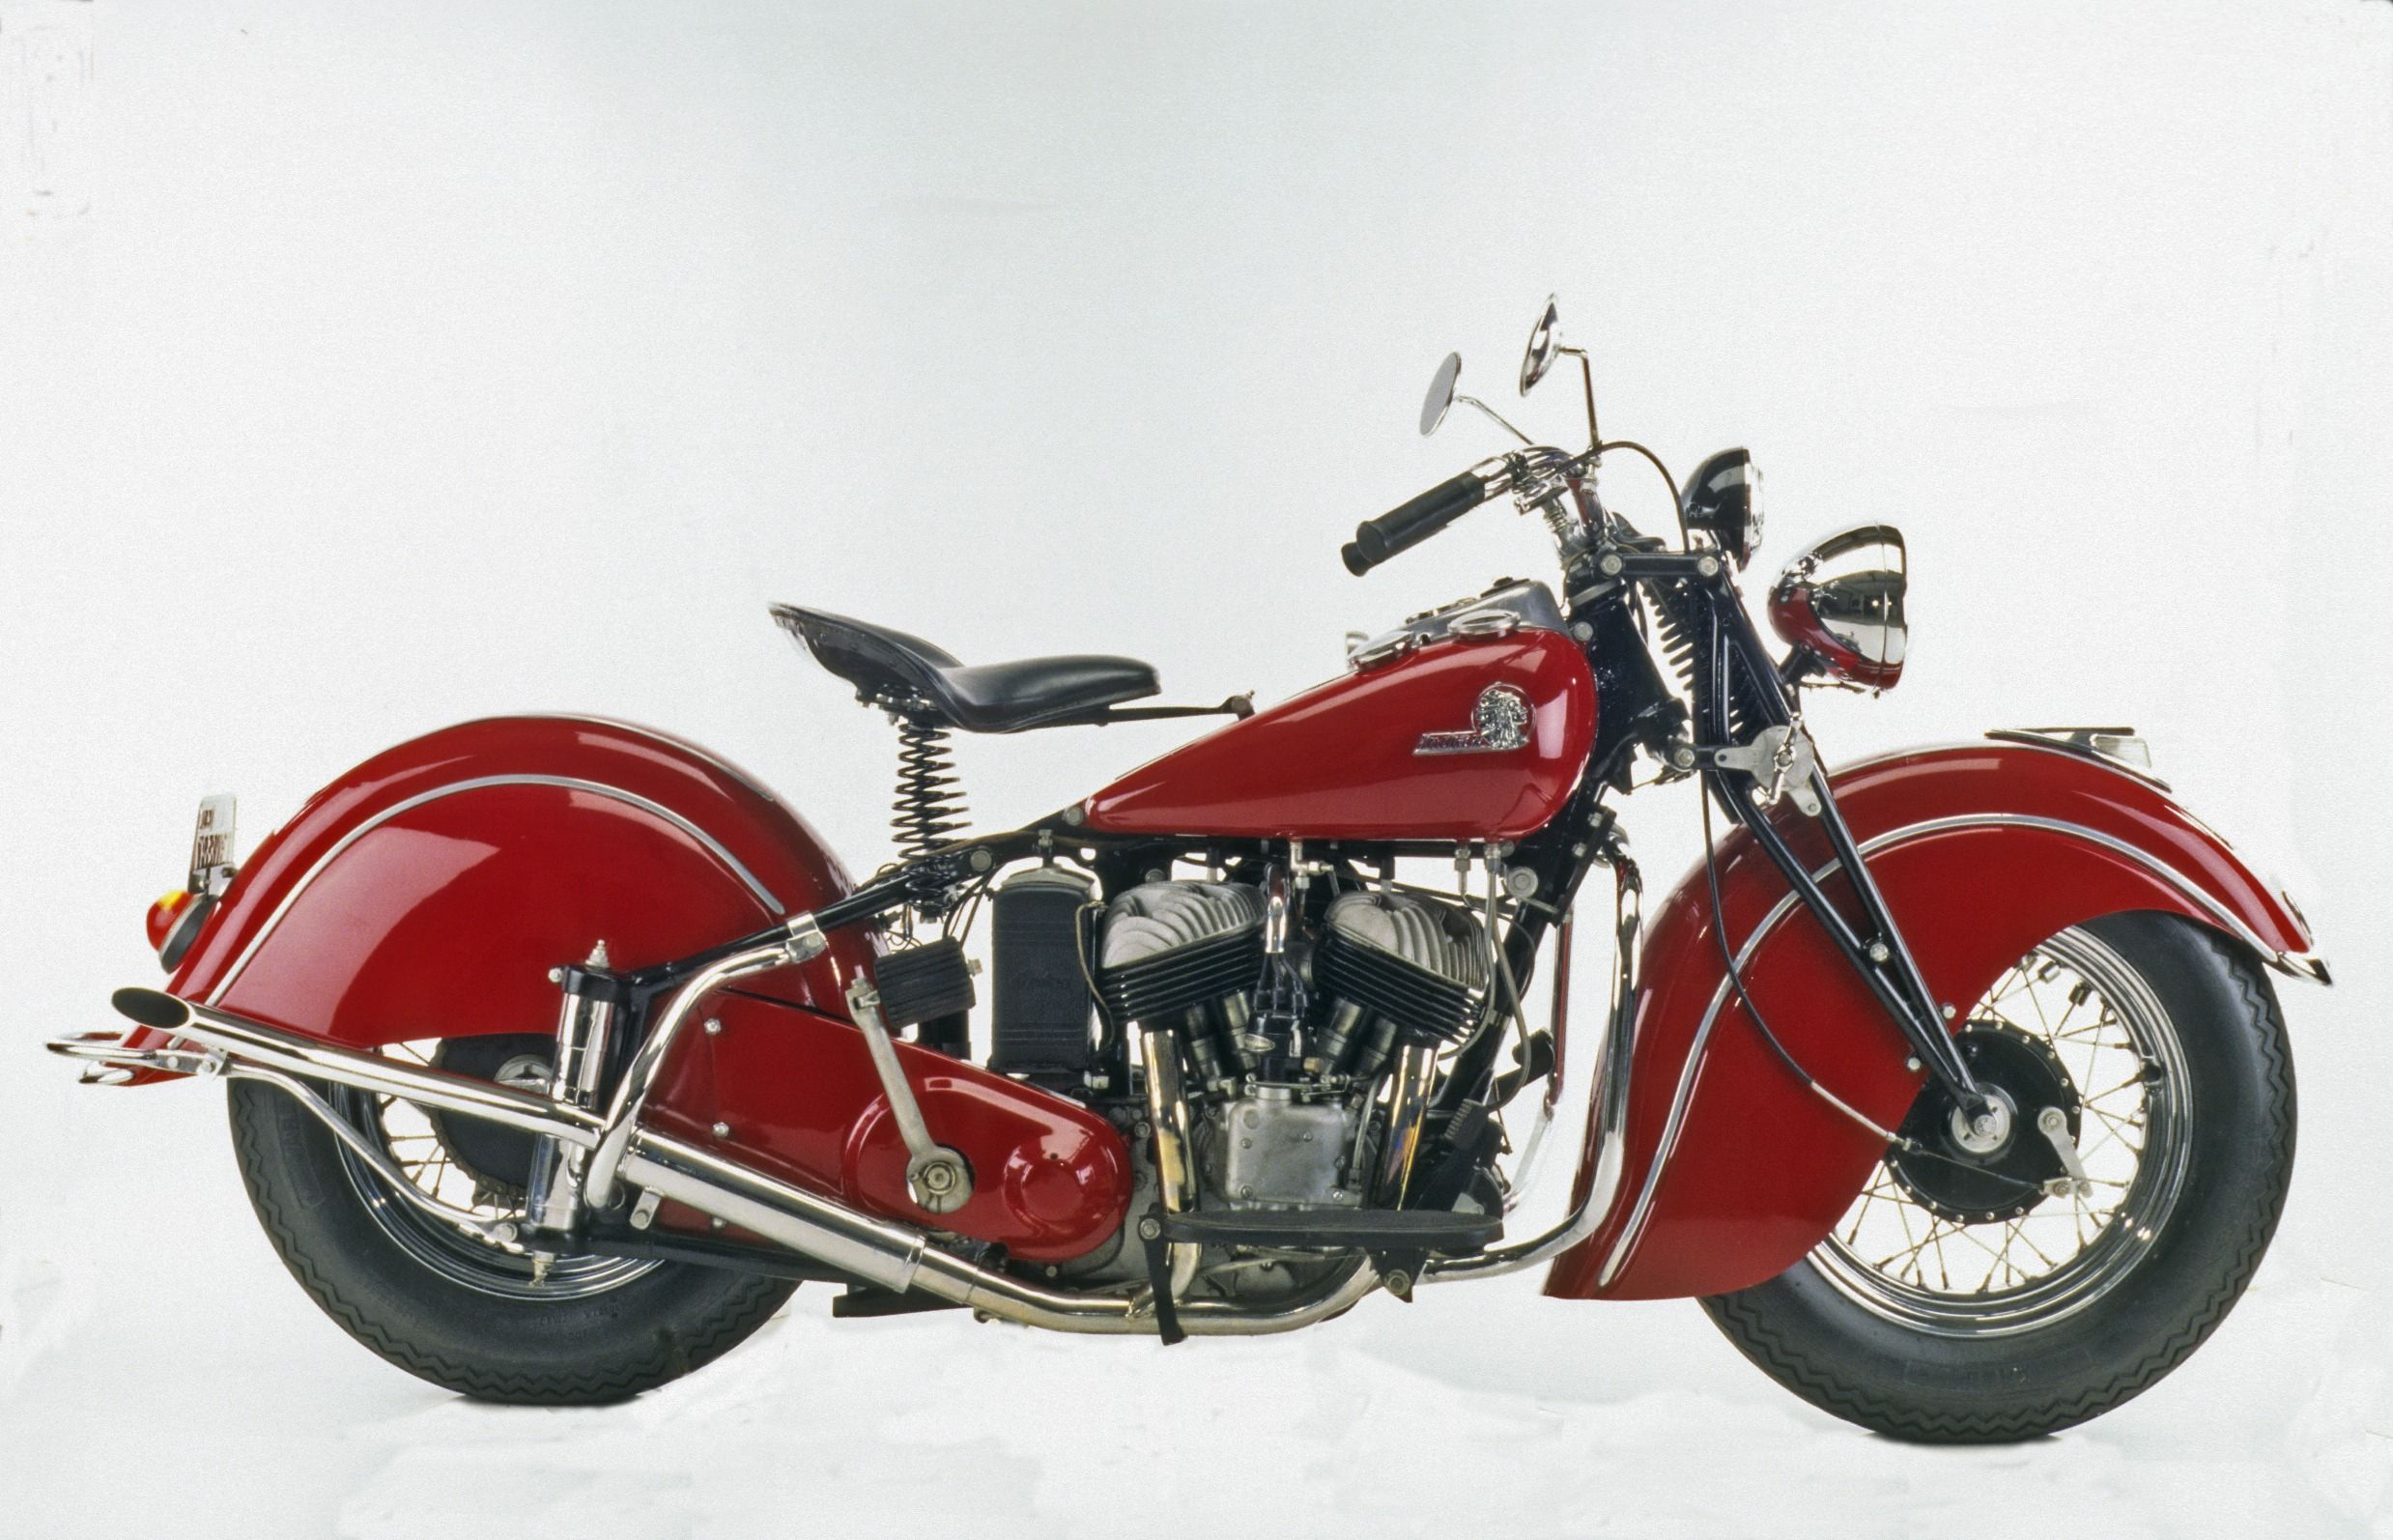 1941 Indian Sport Scout Vintage Indian Motorcycles Indian Motorcycle Indian Motorbike